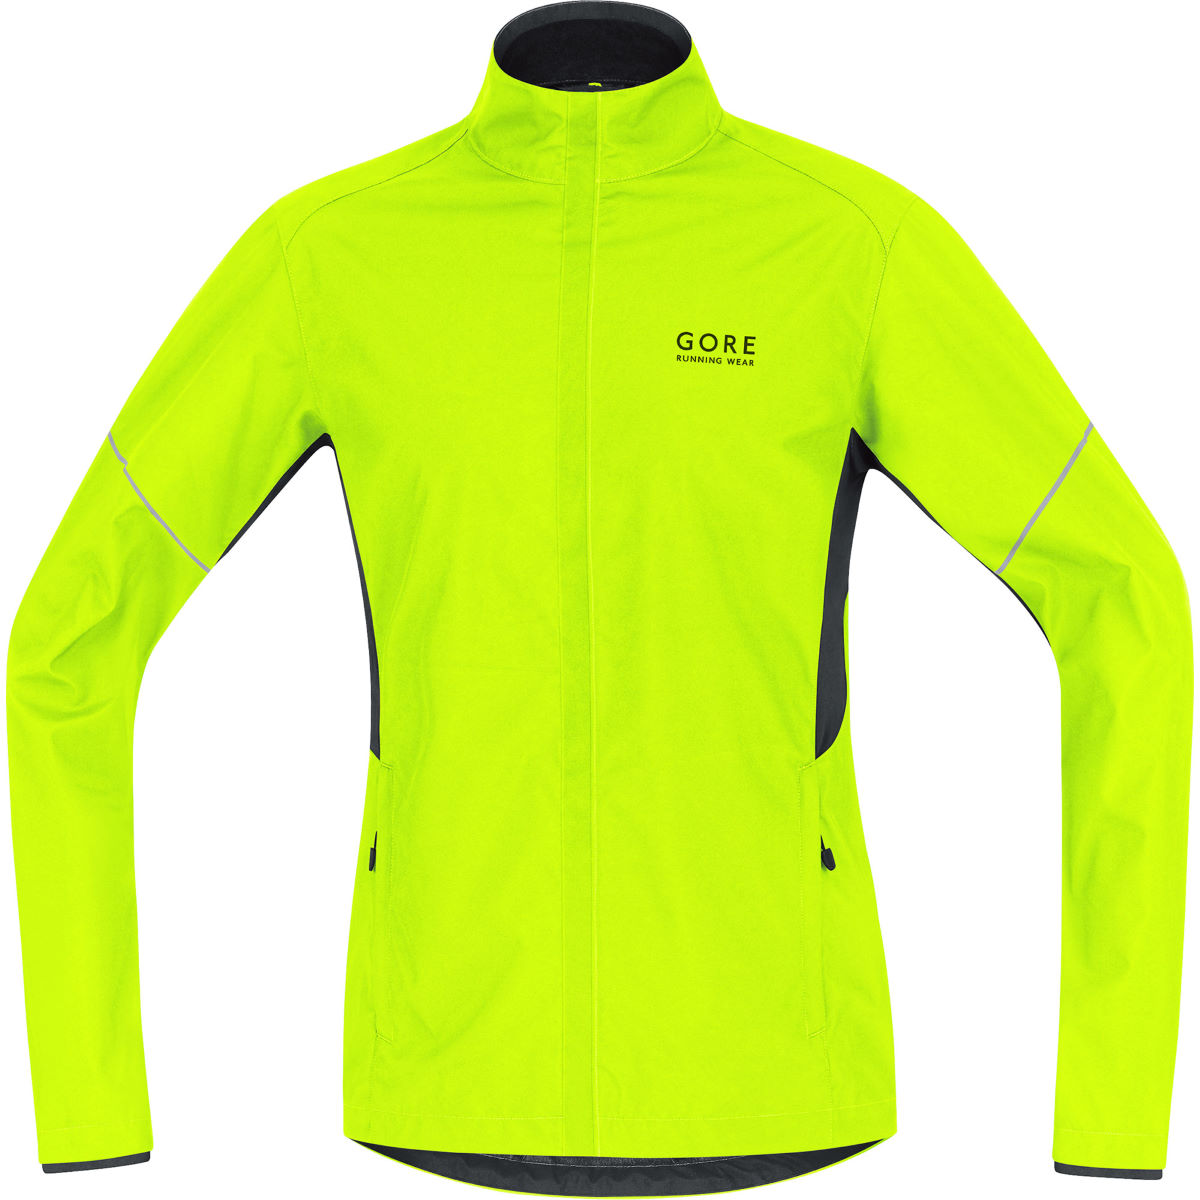 Veste Gore Running Wear WINDSTOPPER® Active Shell Partial (AH16) - S Neon Yellow/Black Vestes de running coupe-vent